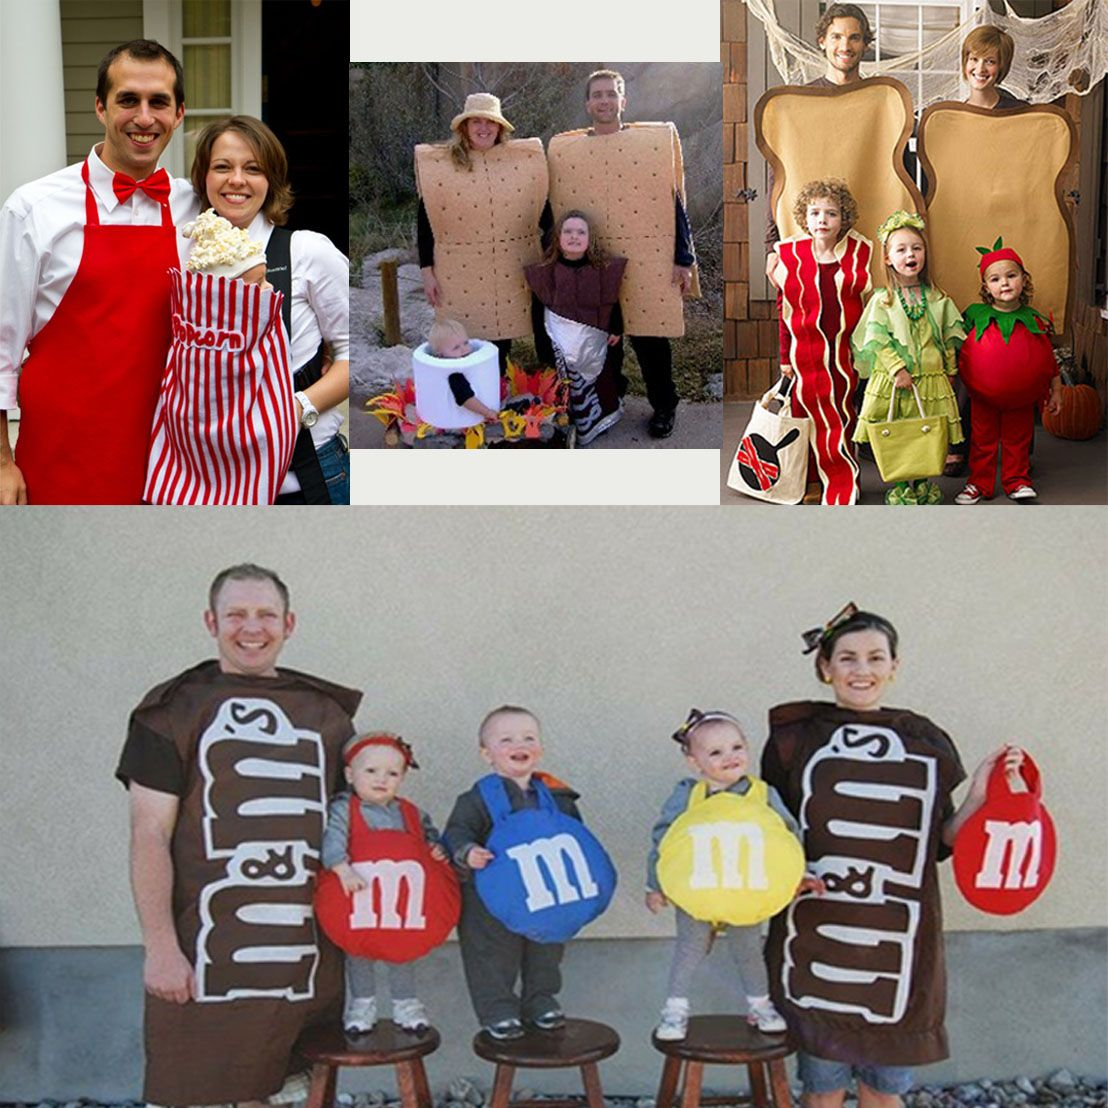 Costumes for family of calvary boulder mops halloween costumes